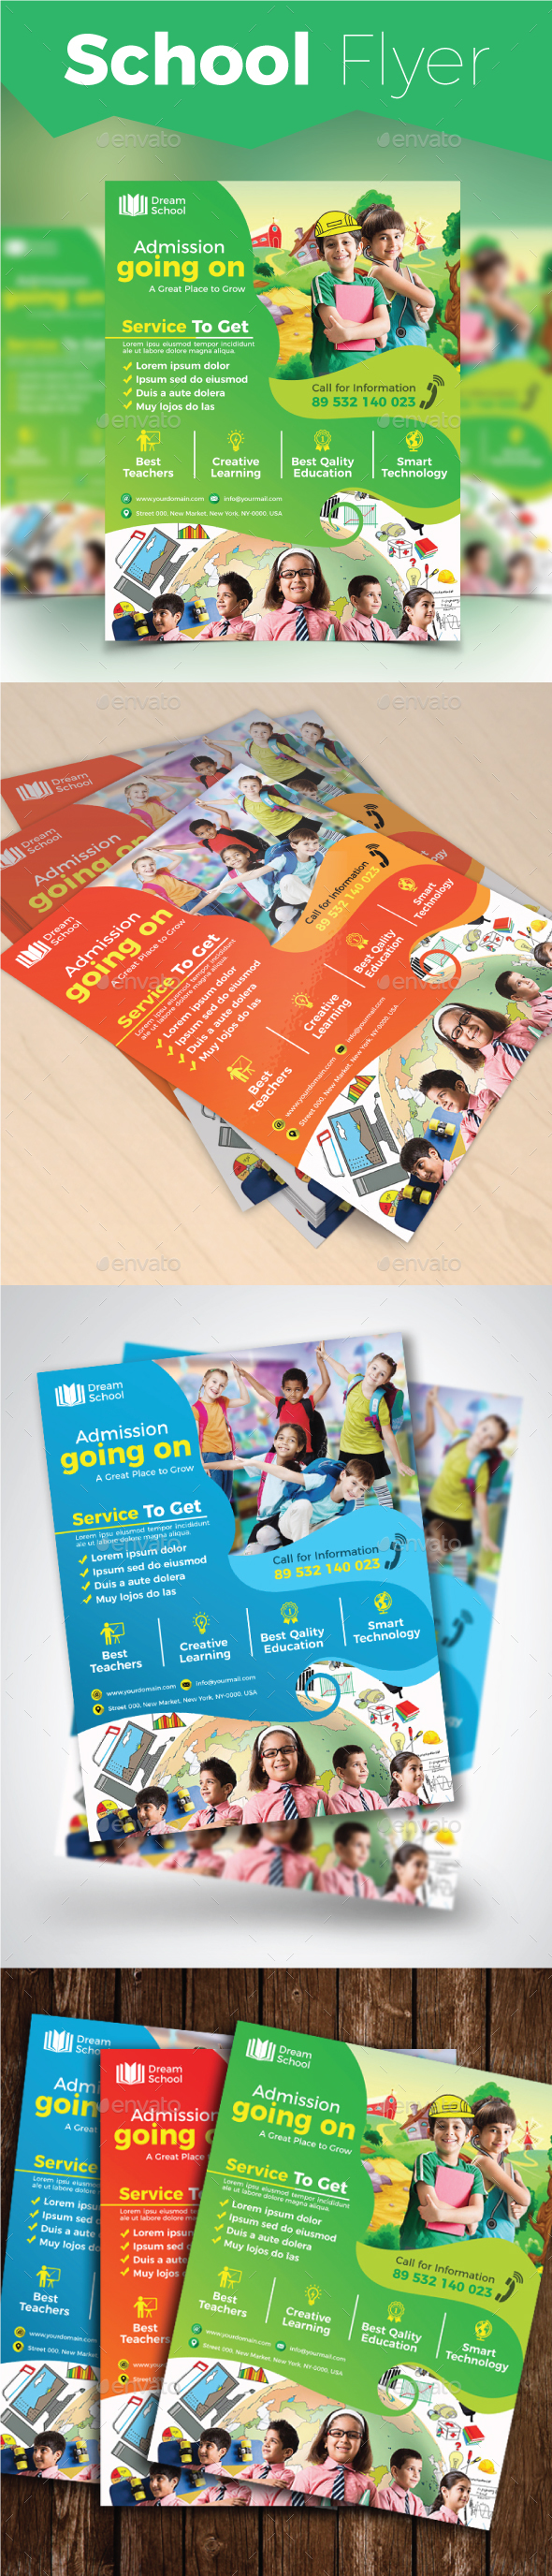 School Flyer - Flyers Print Templates